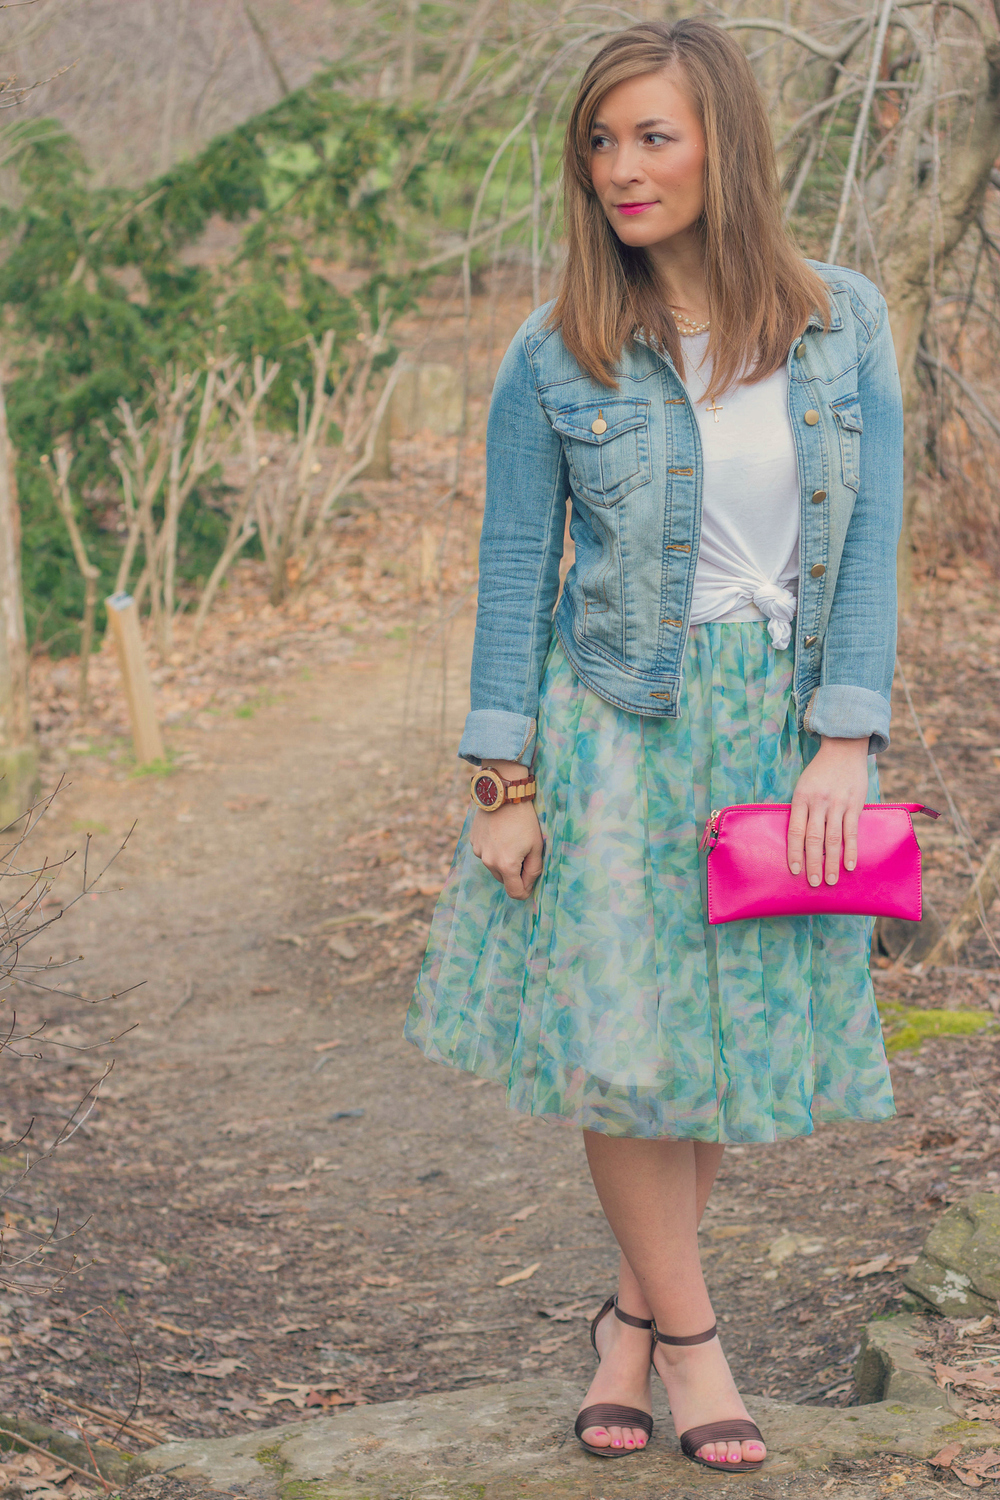 Tulle Skirt for Spring